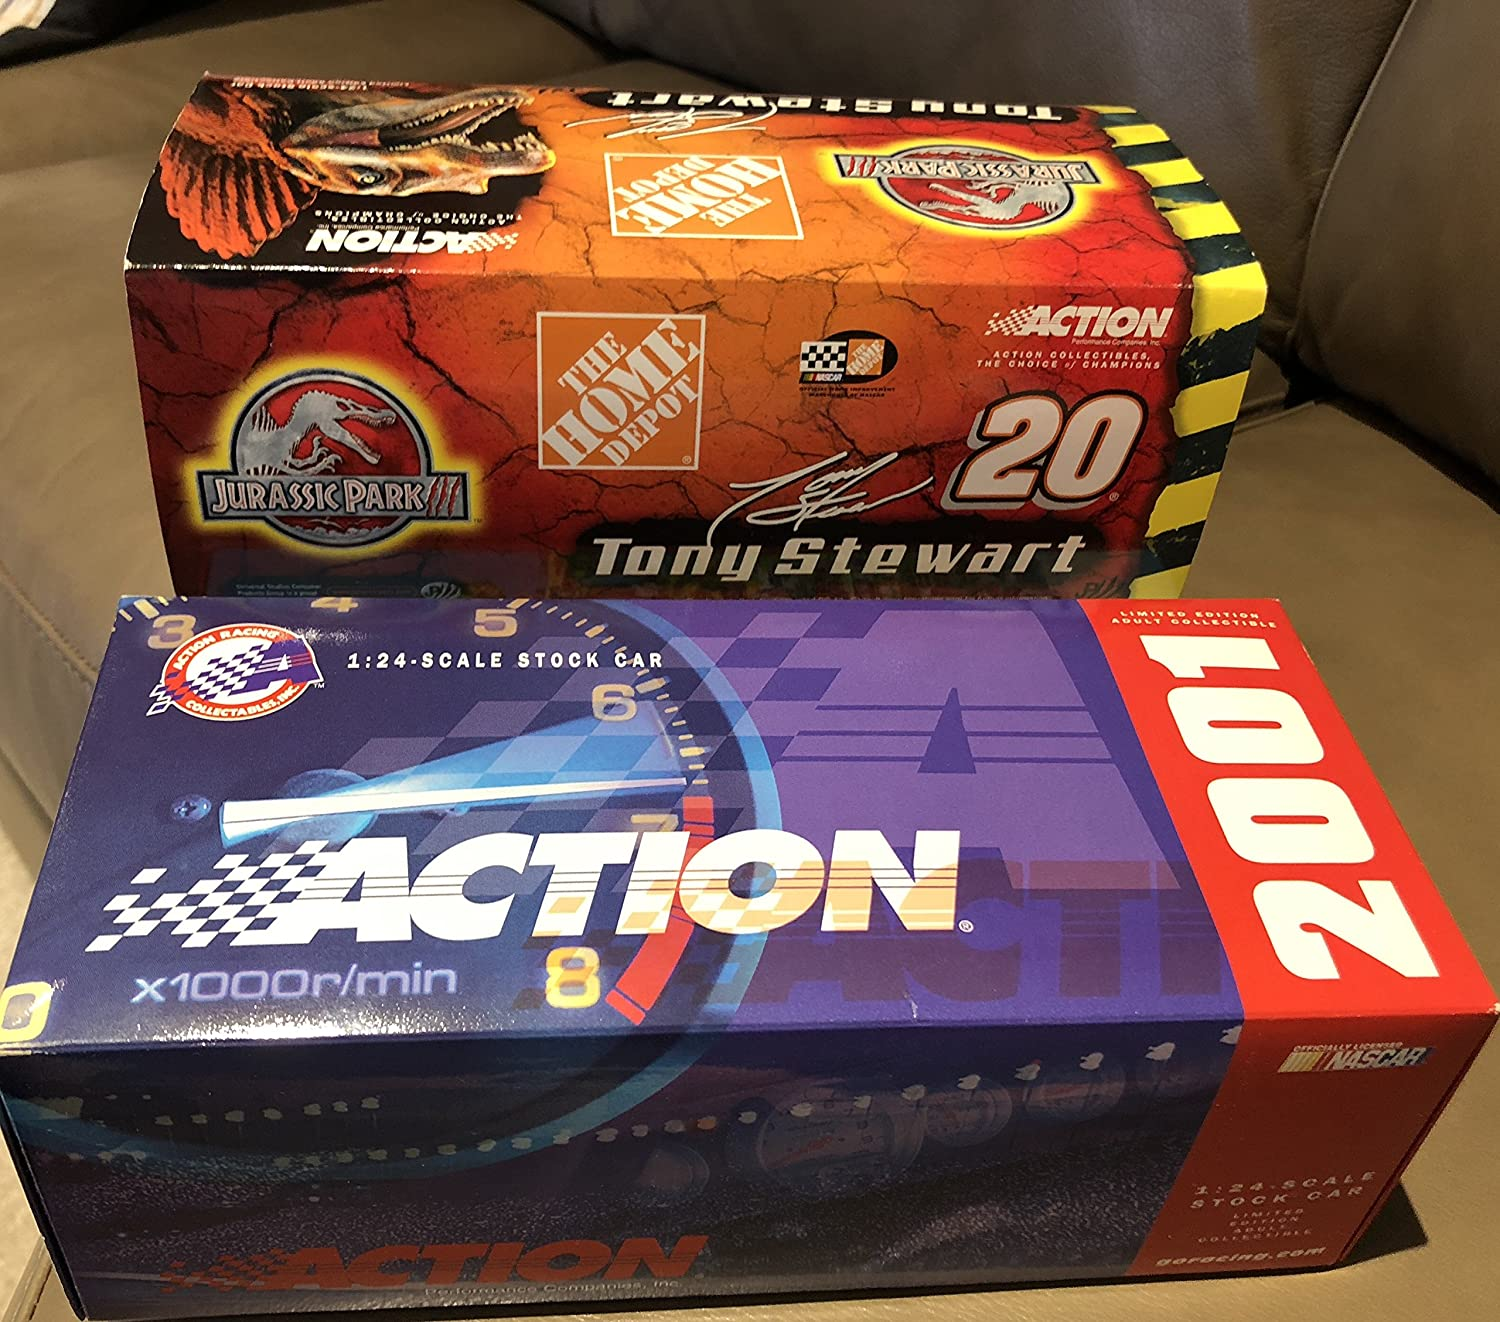 Tony Stewart #20 Jurassic Park III Home Depot Pontiac Grand Prix 1/24 Scale Diecast Hood Opens Trunk Opens HOTO Limited Edition Action Racing Collectables 2001